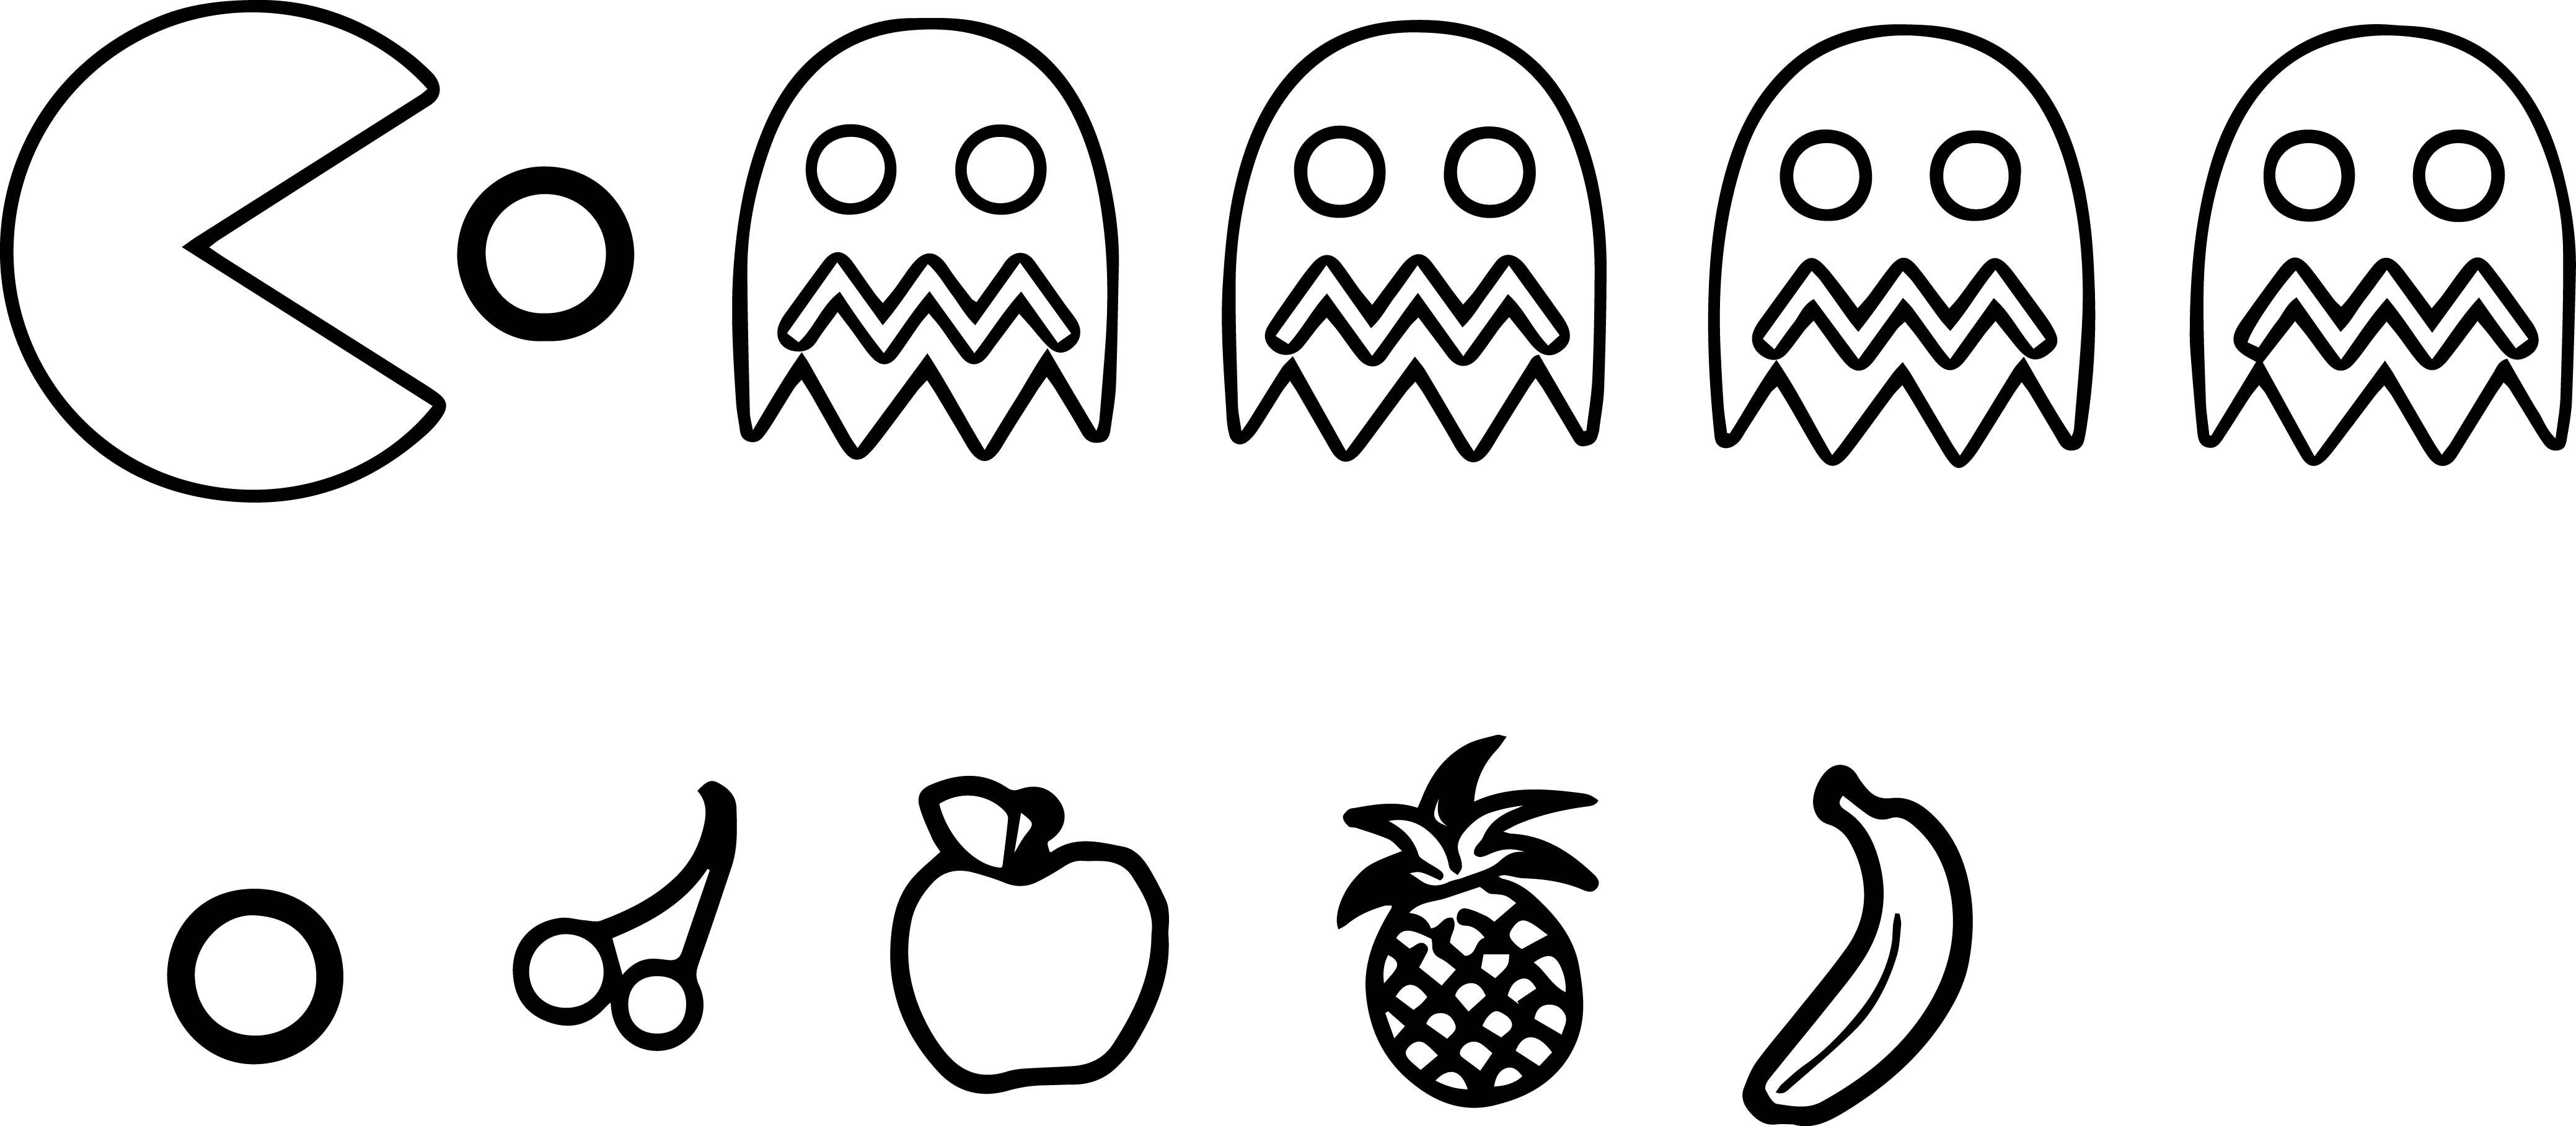 Fundamentals Pac Man Coloring Pages To Print Unique Fruit Gallery Printable Sheet